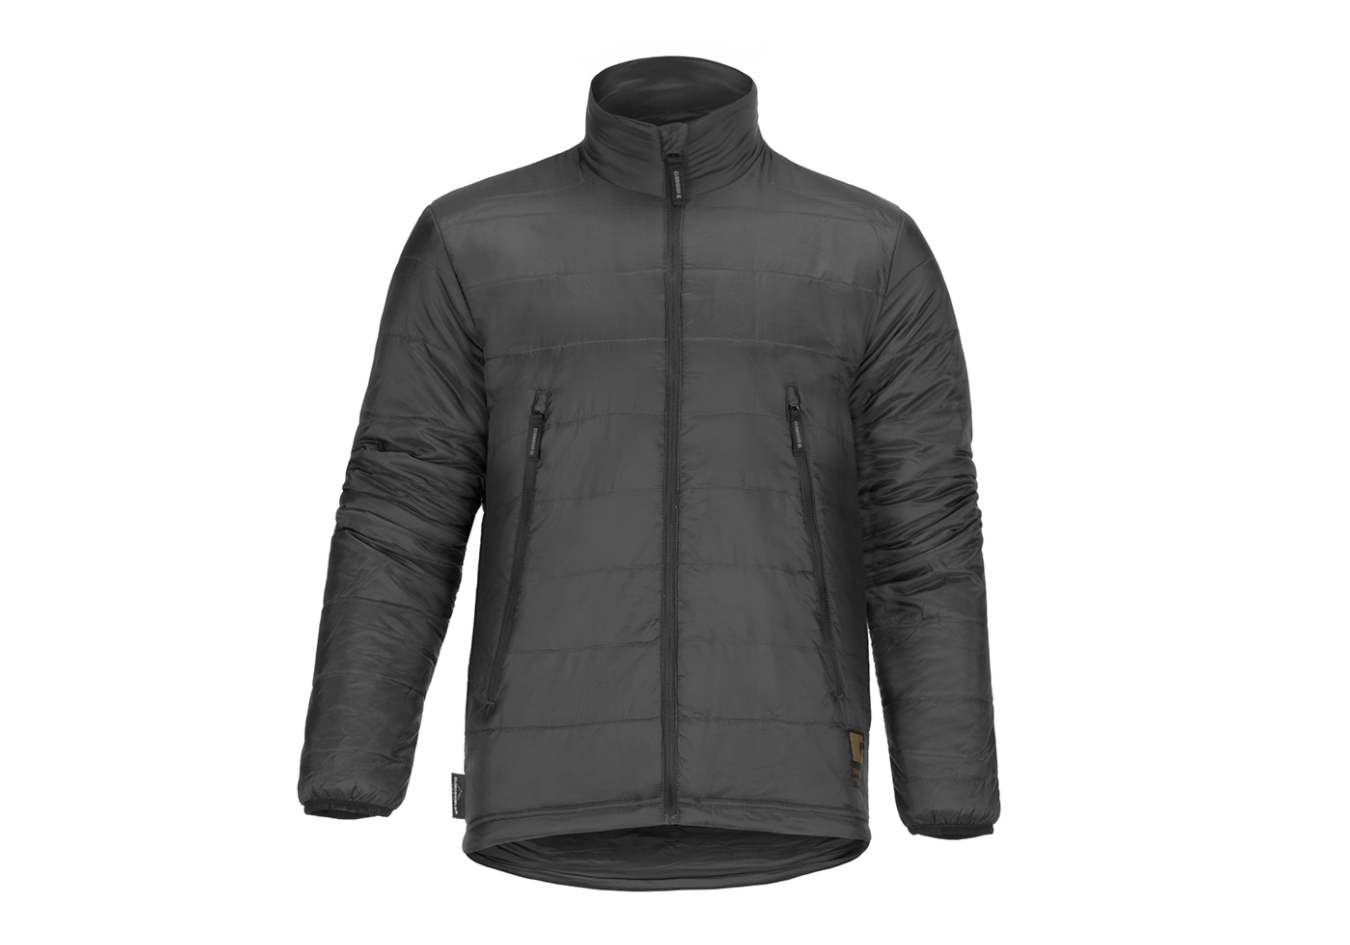 finest selection ec8f0 040b8 Clawgear - CIL Jacket Climashield Apex